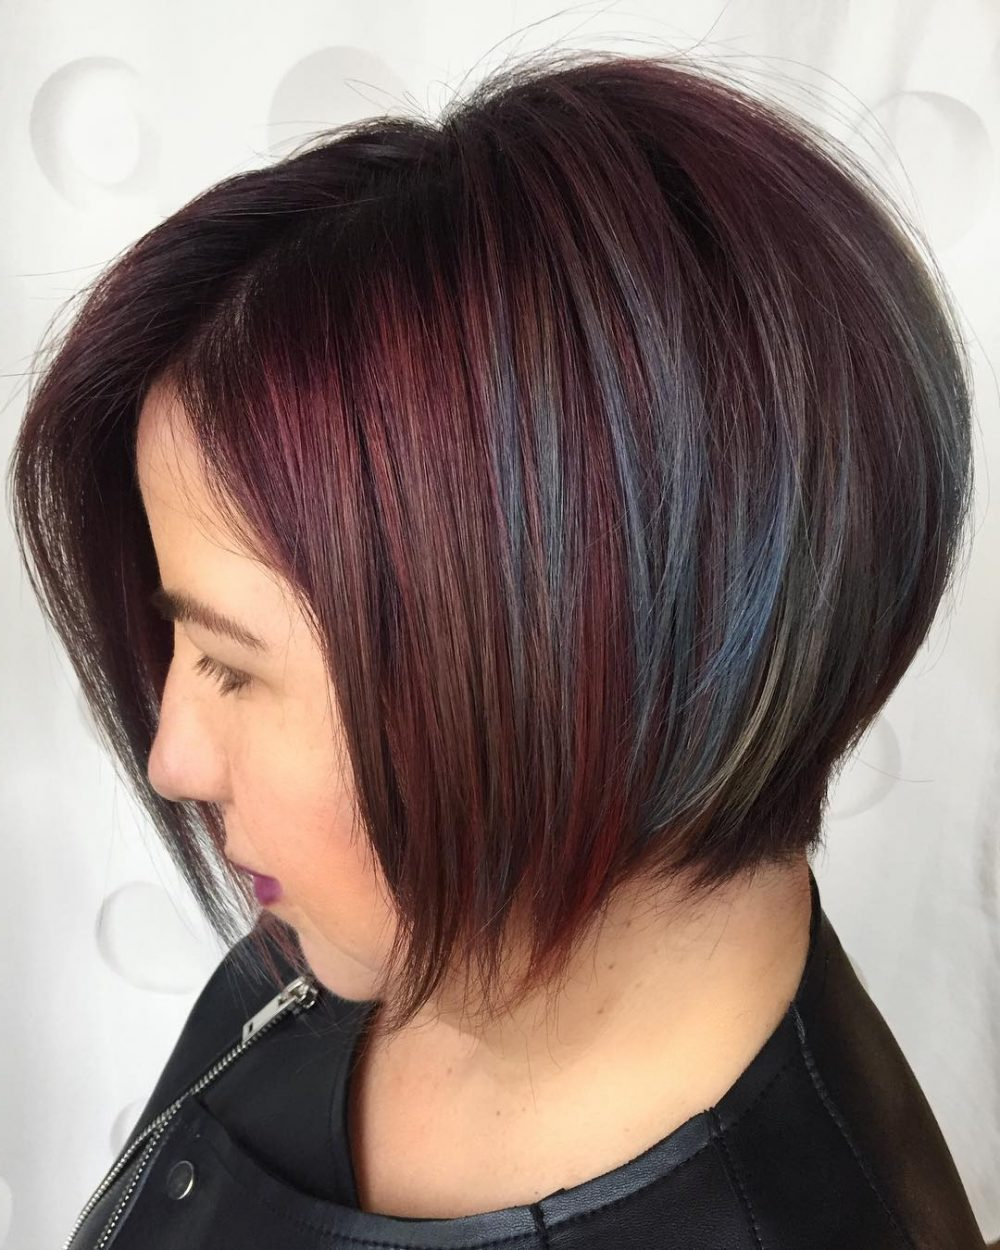 34 Greatest Short Haircuts And Hairstyles For Thick Hair For 2018 Regarding Straight Pixie Hairstyles For Thick Hair (View 11 of 20)